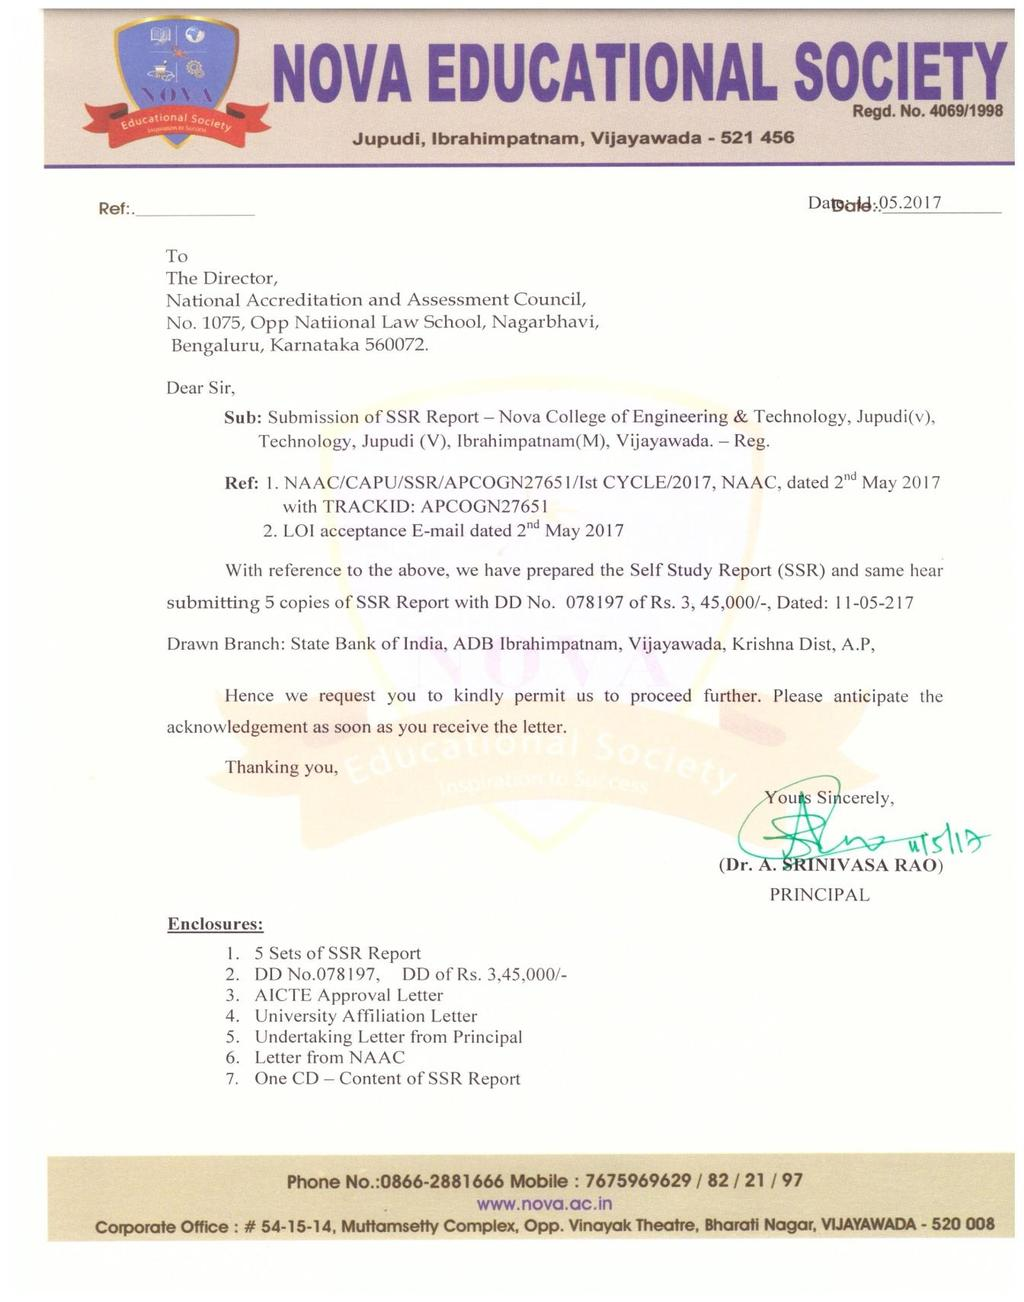 Nova College Of Engineering And Technology Approved By Aicte Dc Motor Drives Electrical Study App Saru Tech Self